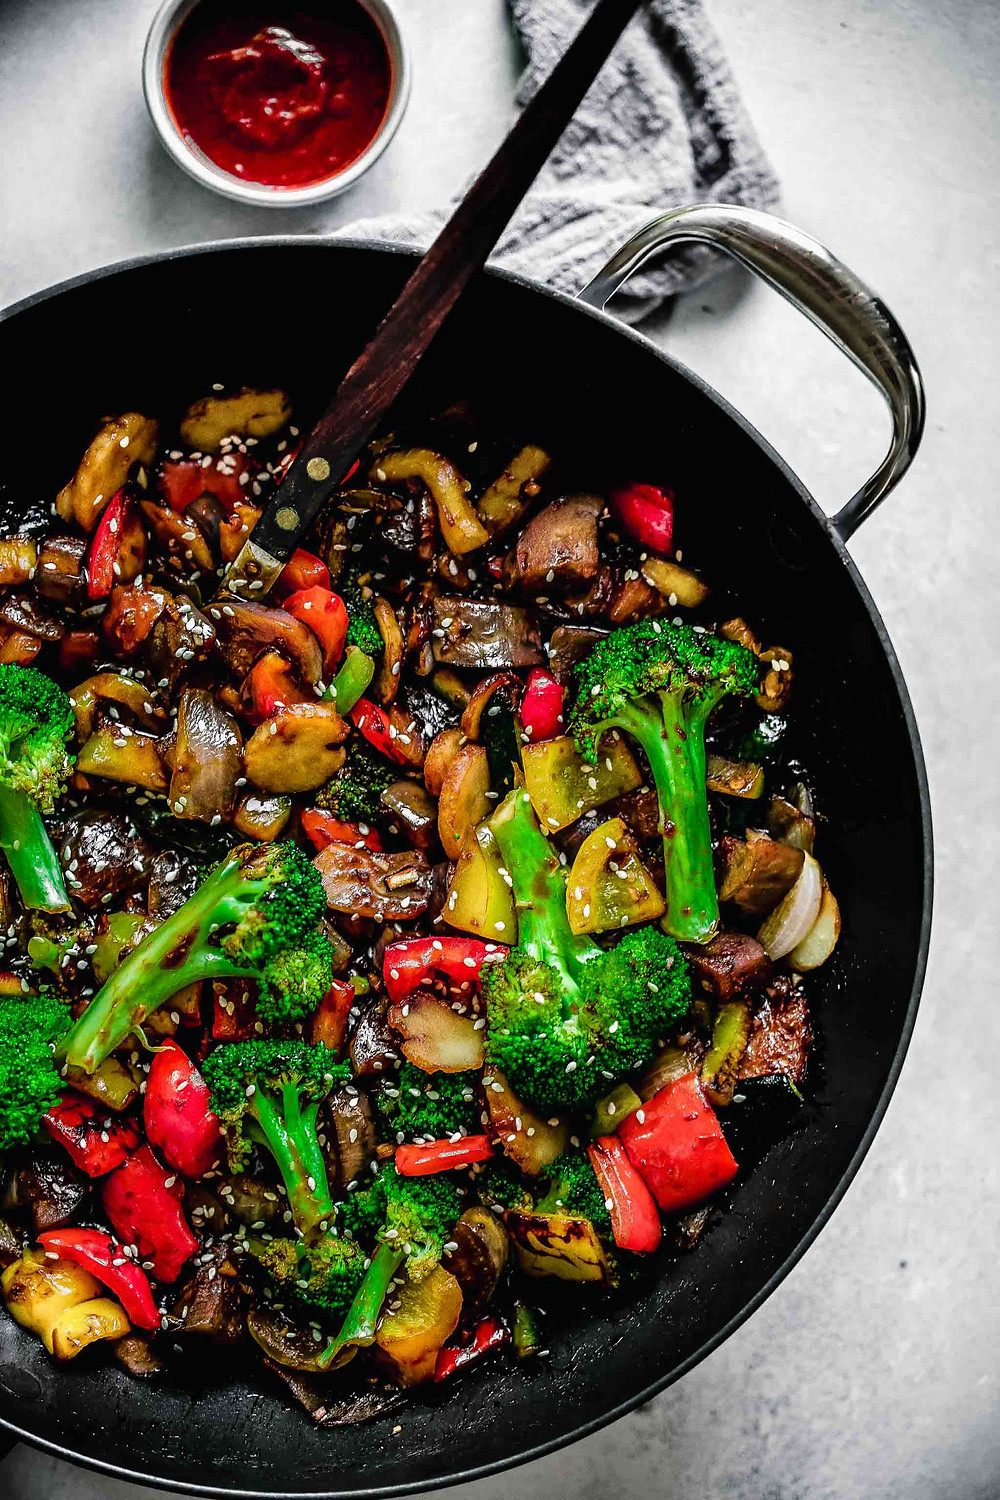 ginger veggie stir fry can use a mix of fresh and frozen vegetables